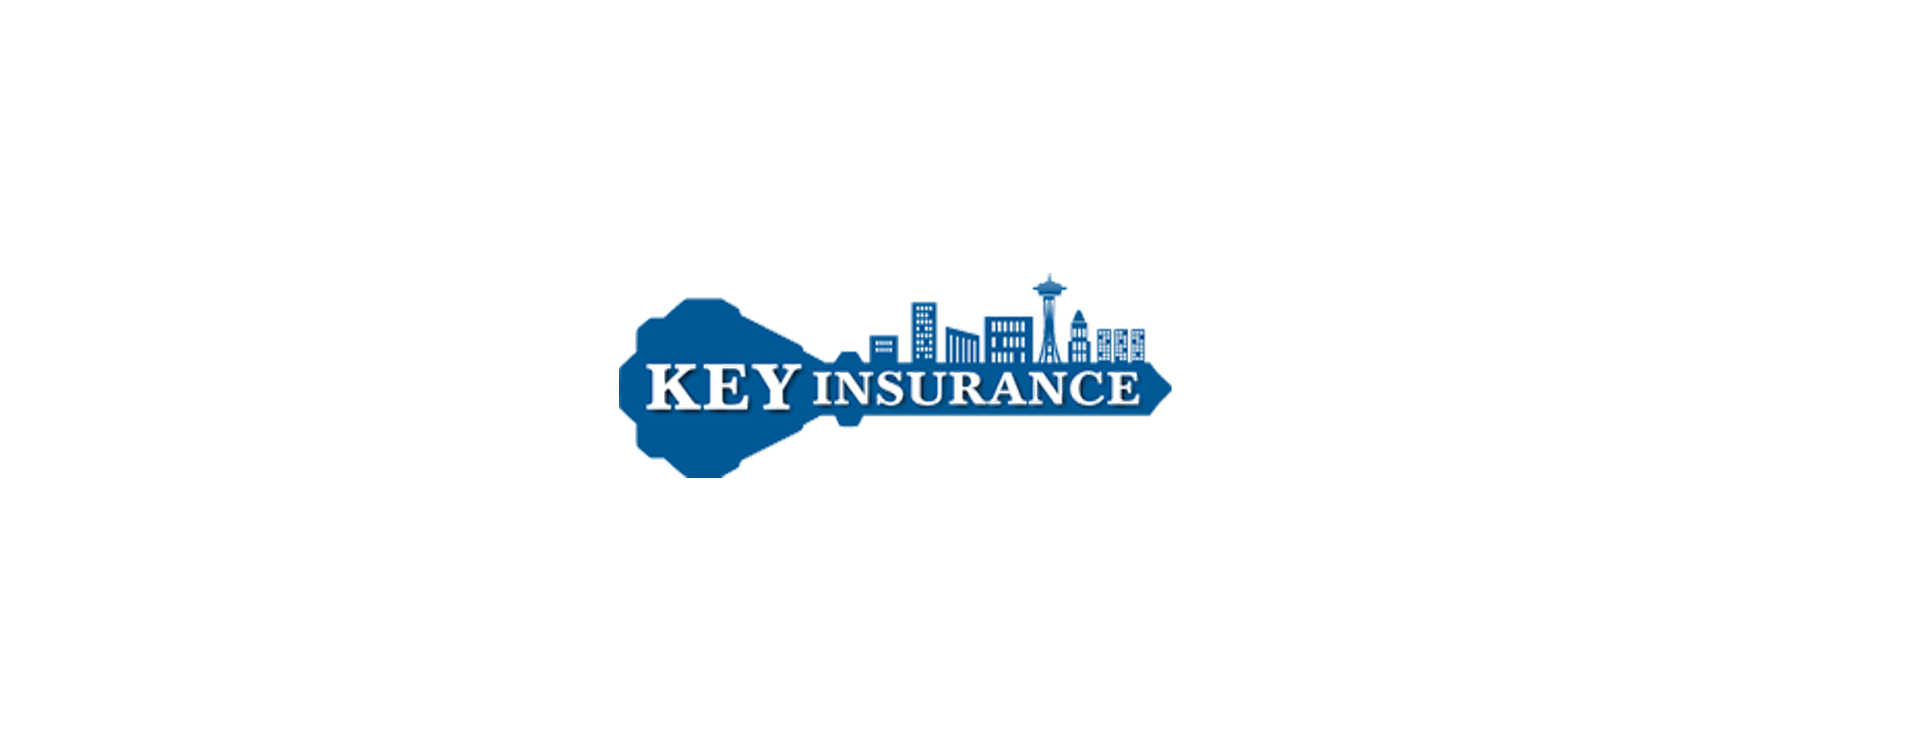 KEY Insurance Washington